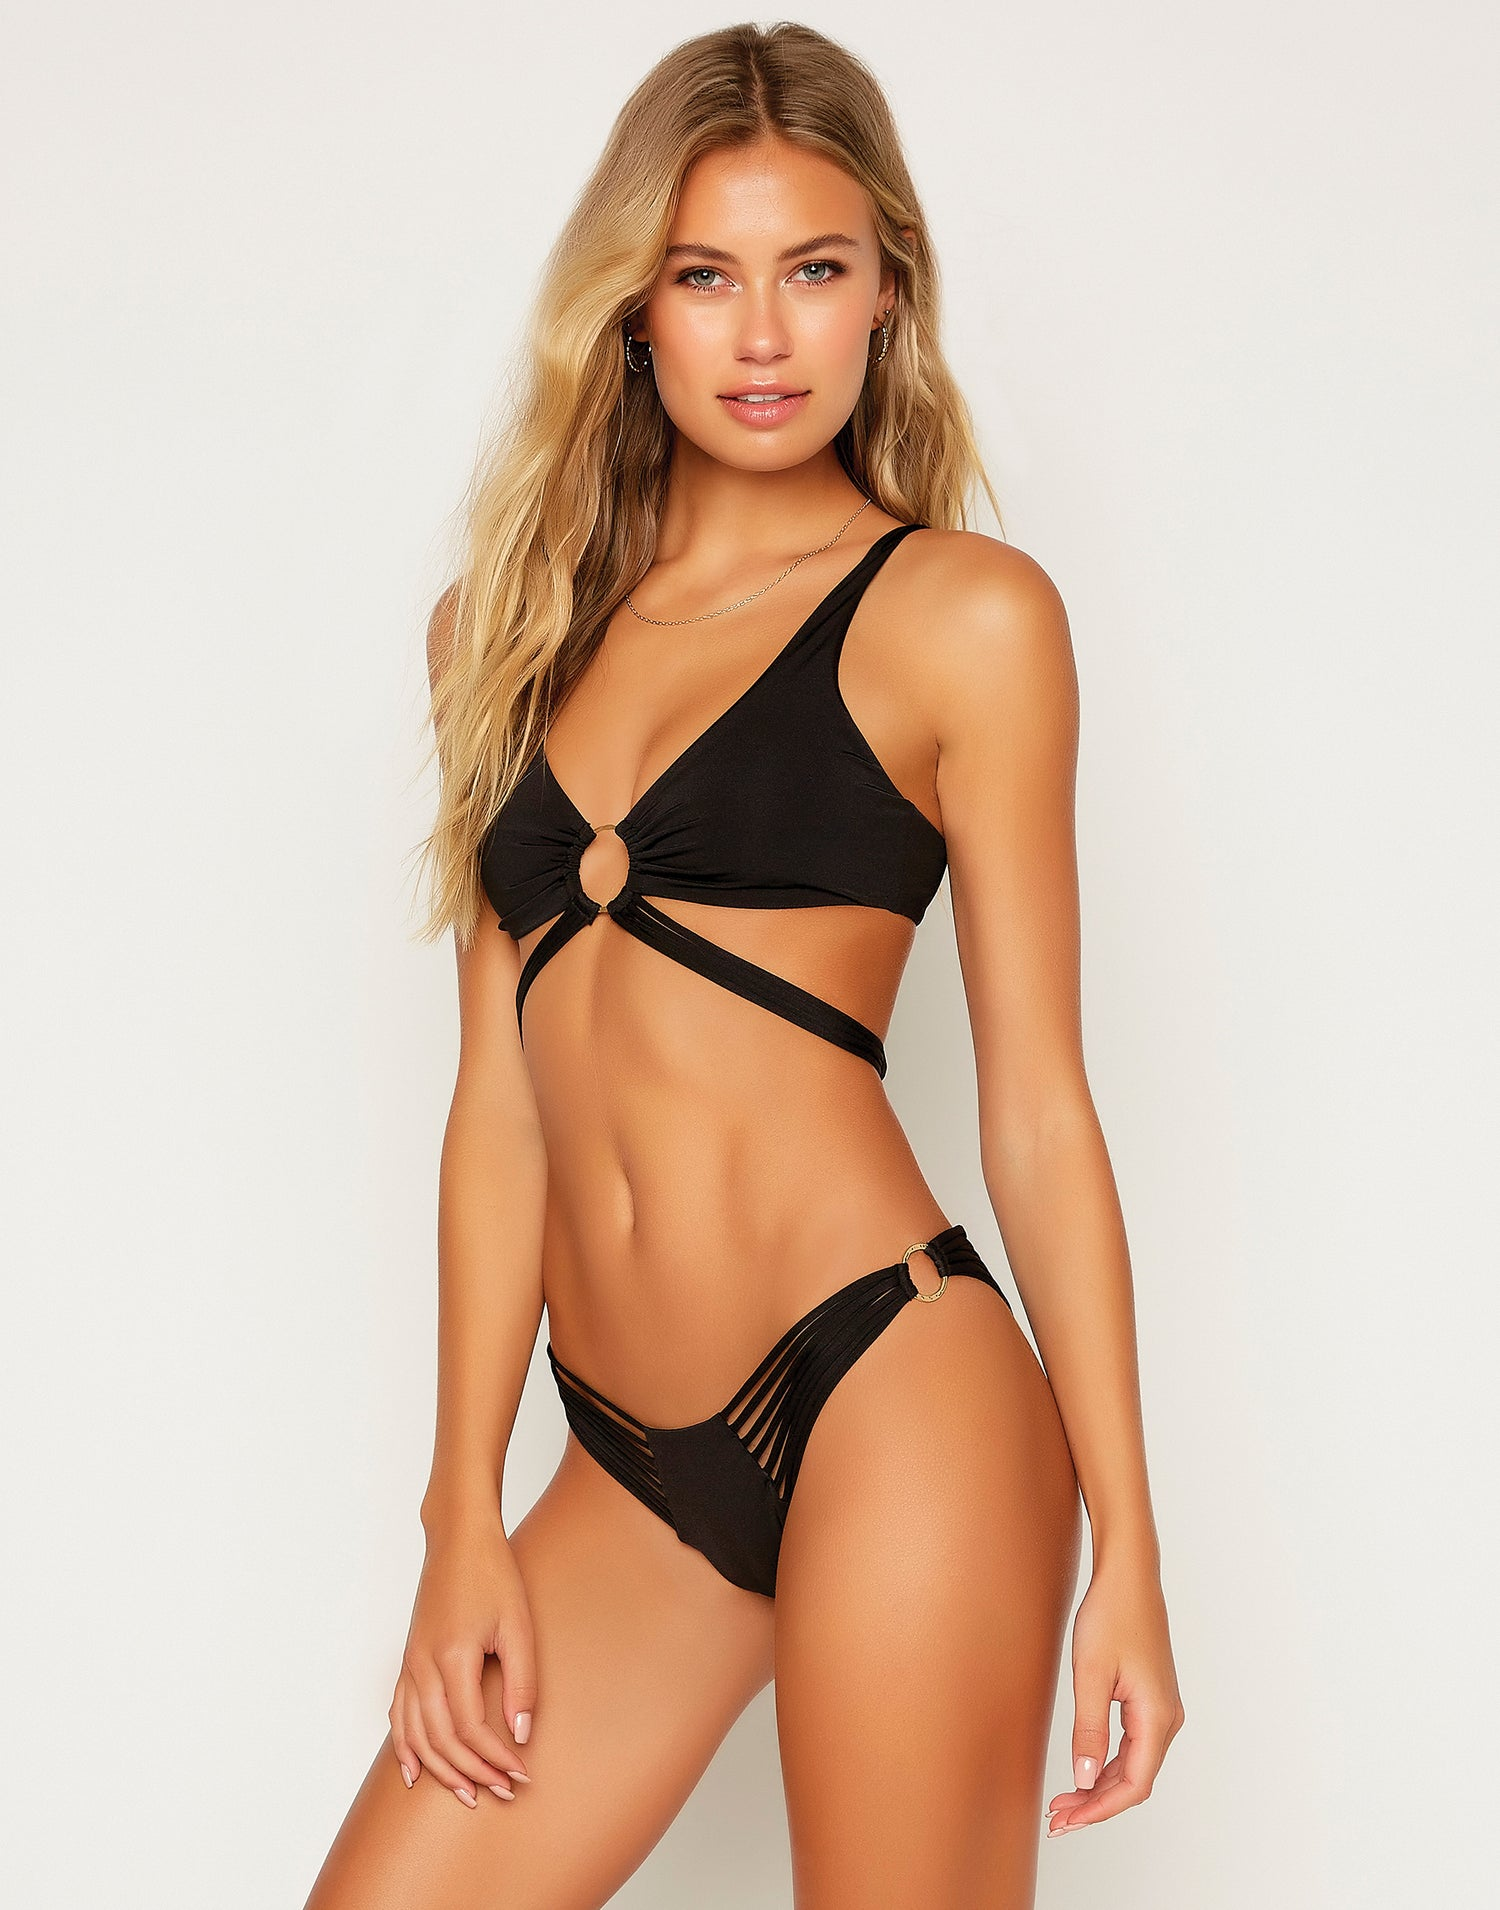 Indy Micro Tango Bikini Bottom in Black with Strappy Details - Angled View